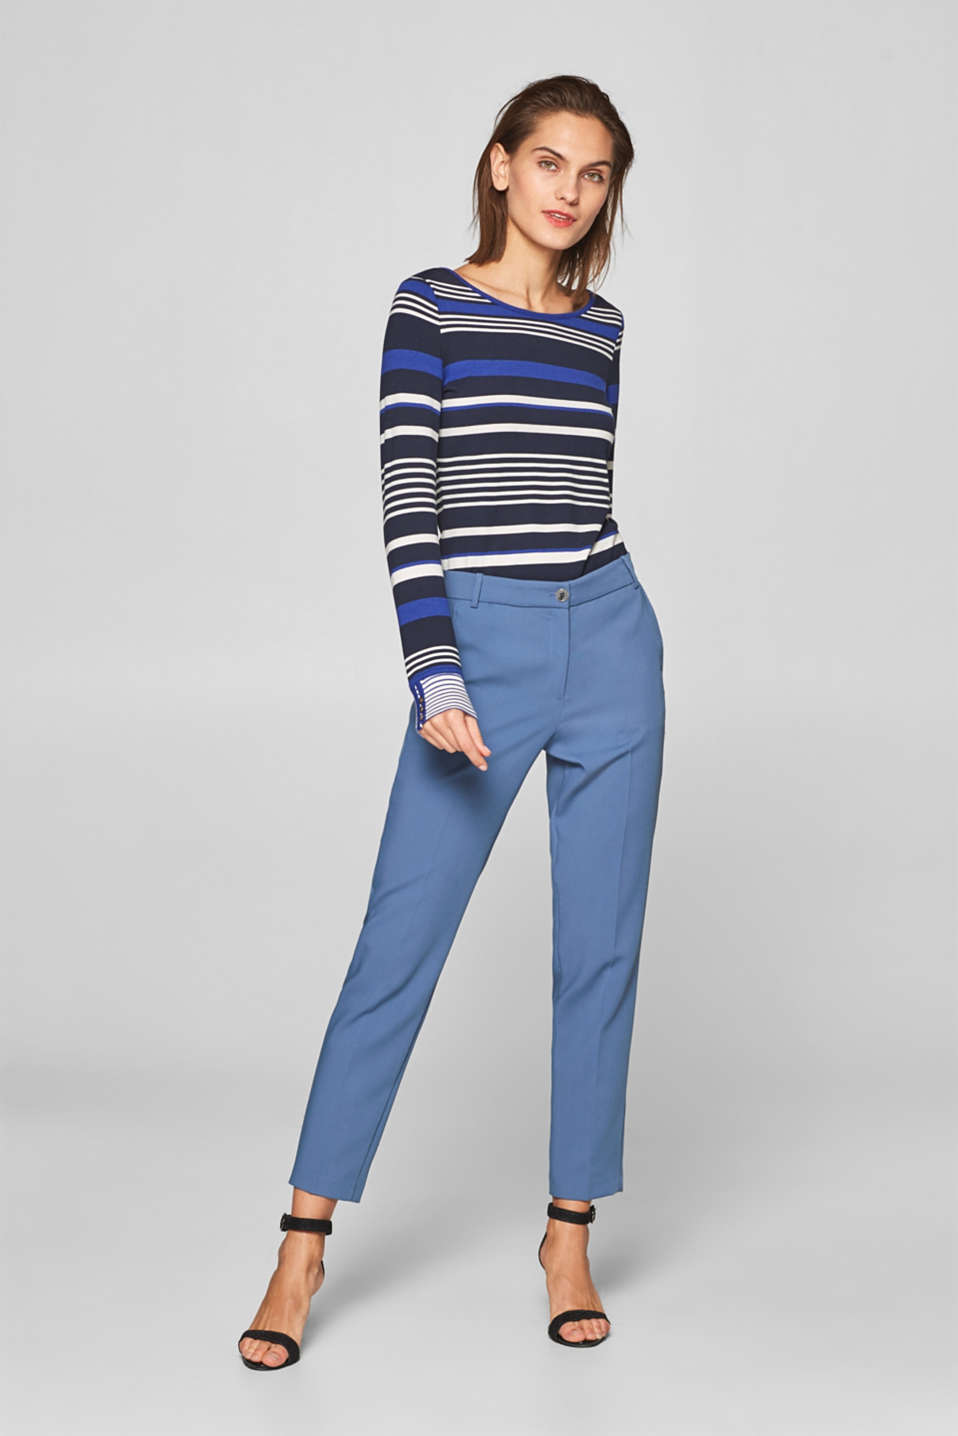 Striped, stretchy long sleeve top with cuffs, NAVY 2, detail image number 1